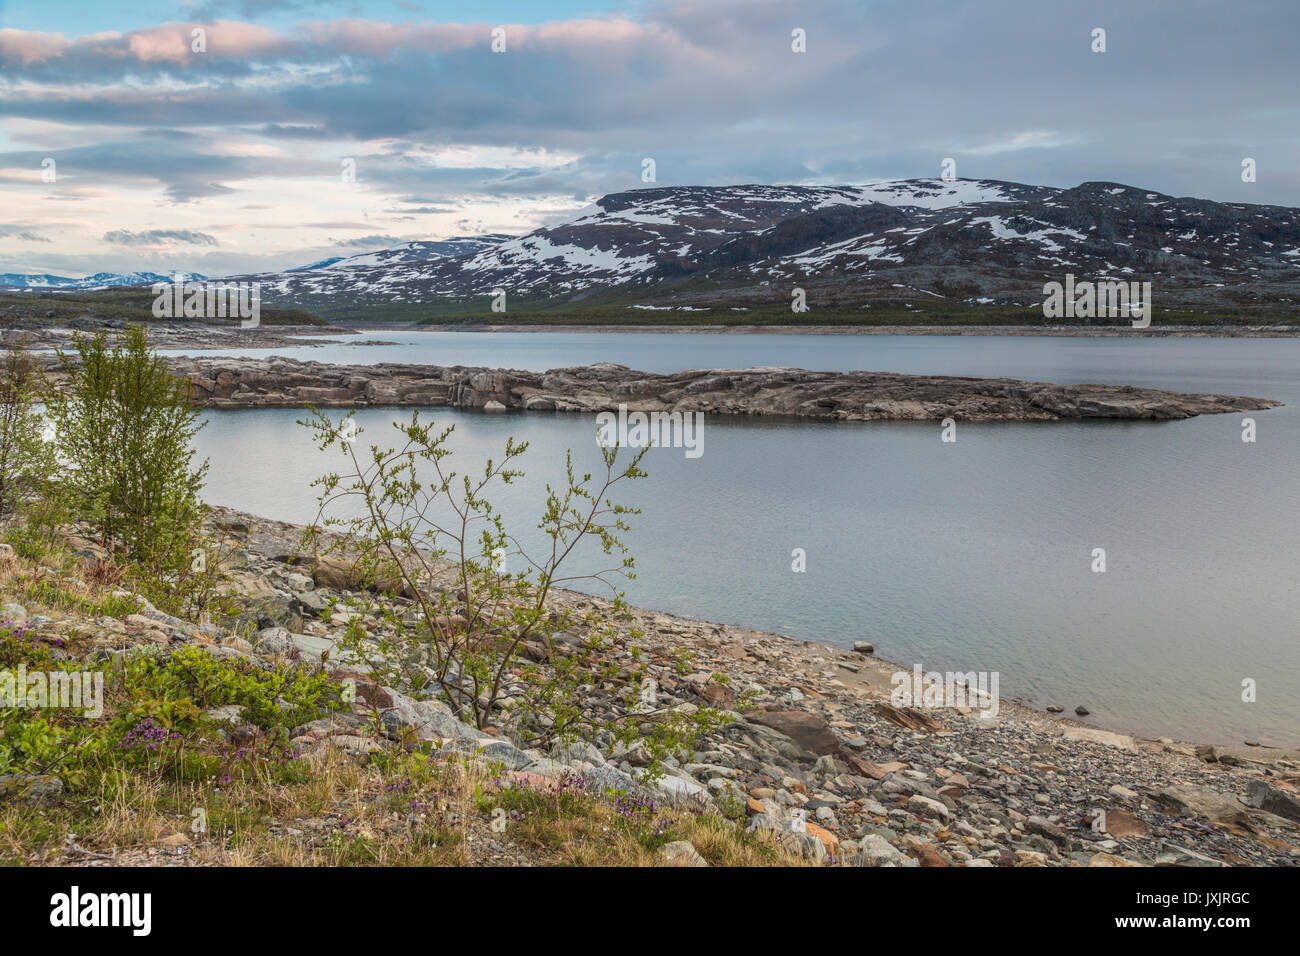 Sunset over Laponia, Stora sjöfallets national park with nice warm colors on the sky reflecting in the water, little snow on the mountains, Stora sjöf - Stock Image